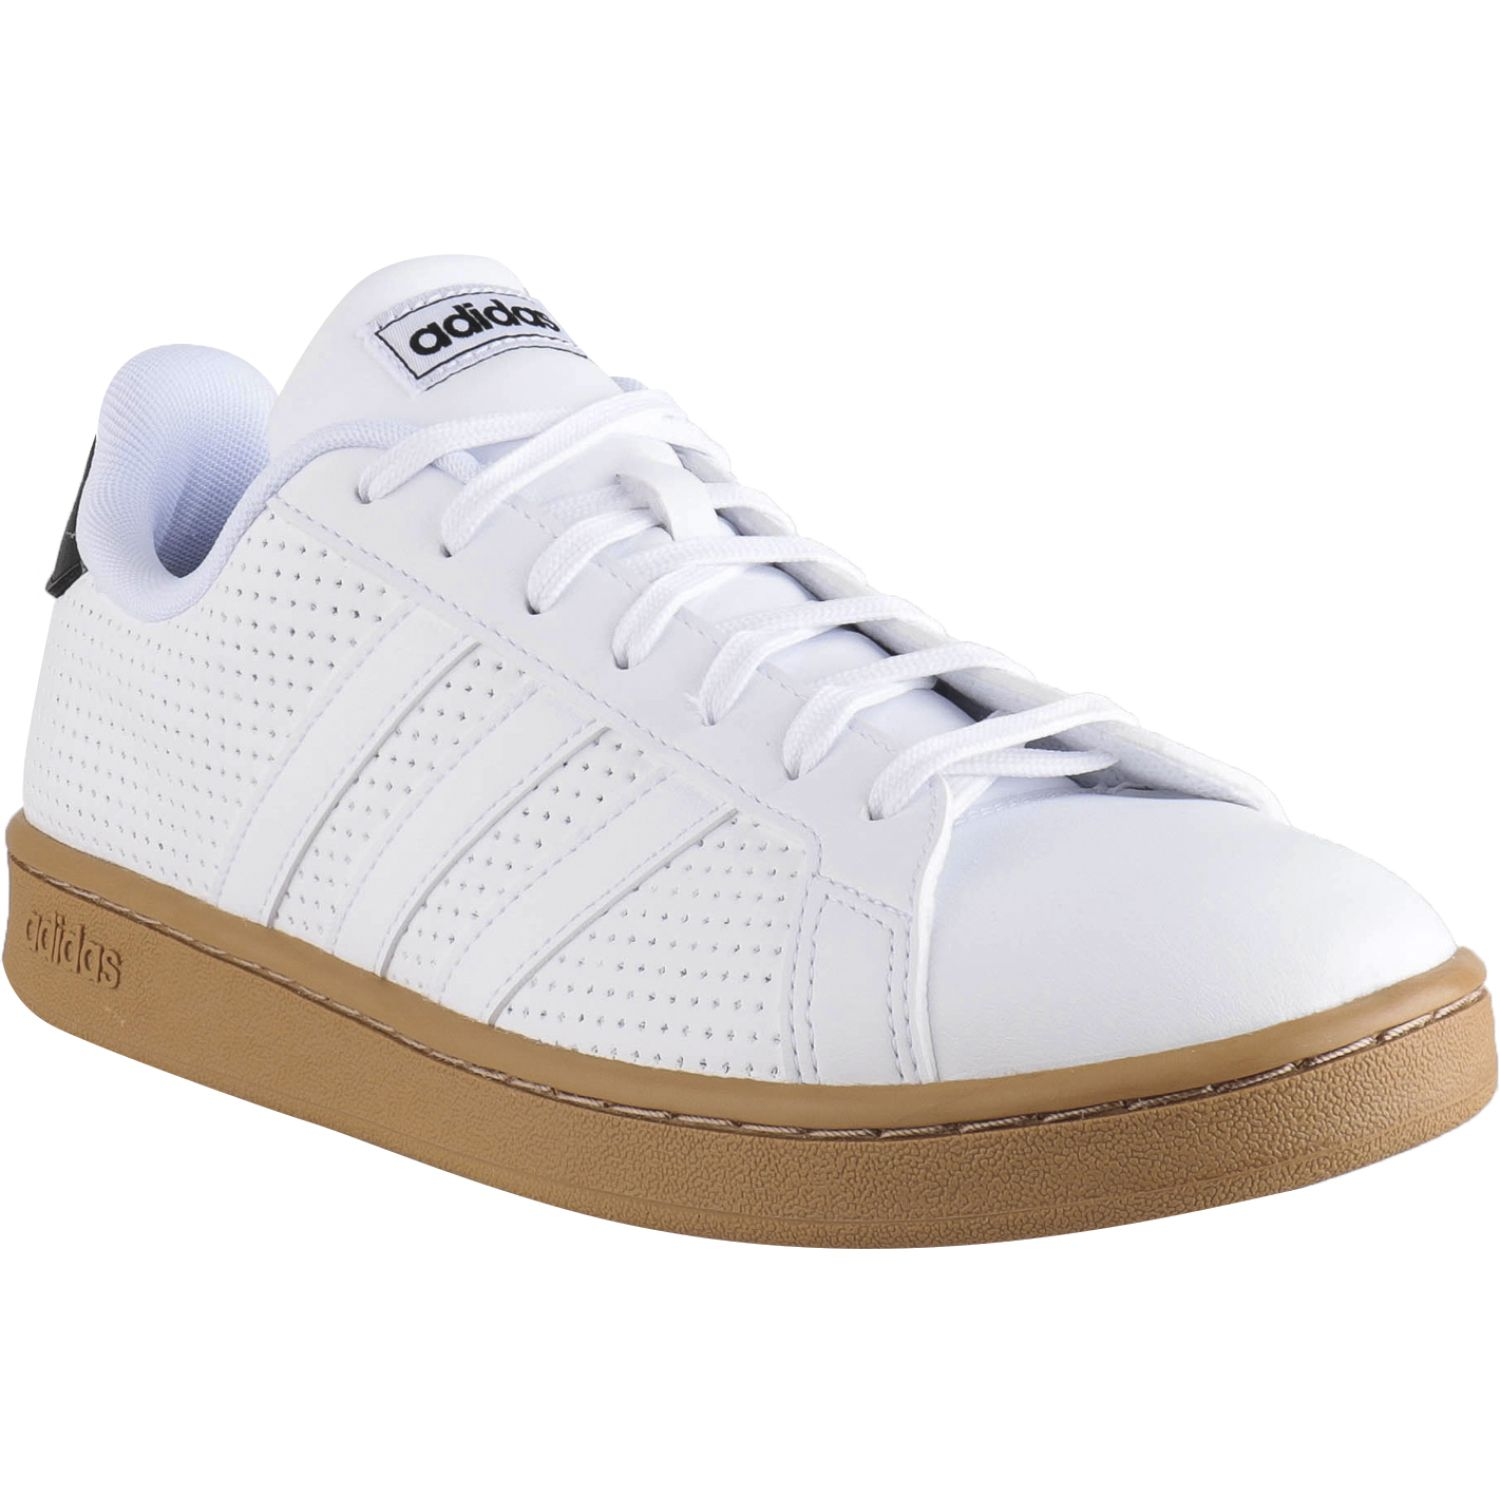 Adidas grand court BLANCO / MOSTAZA Walking